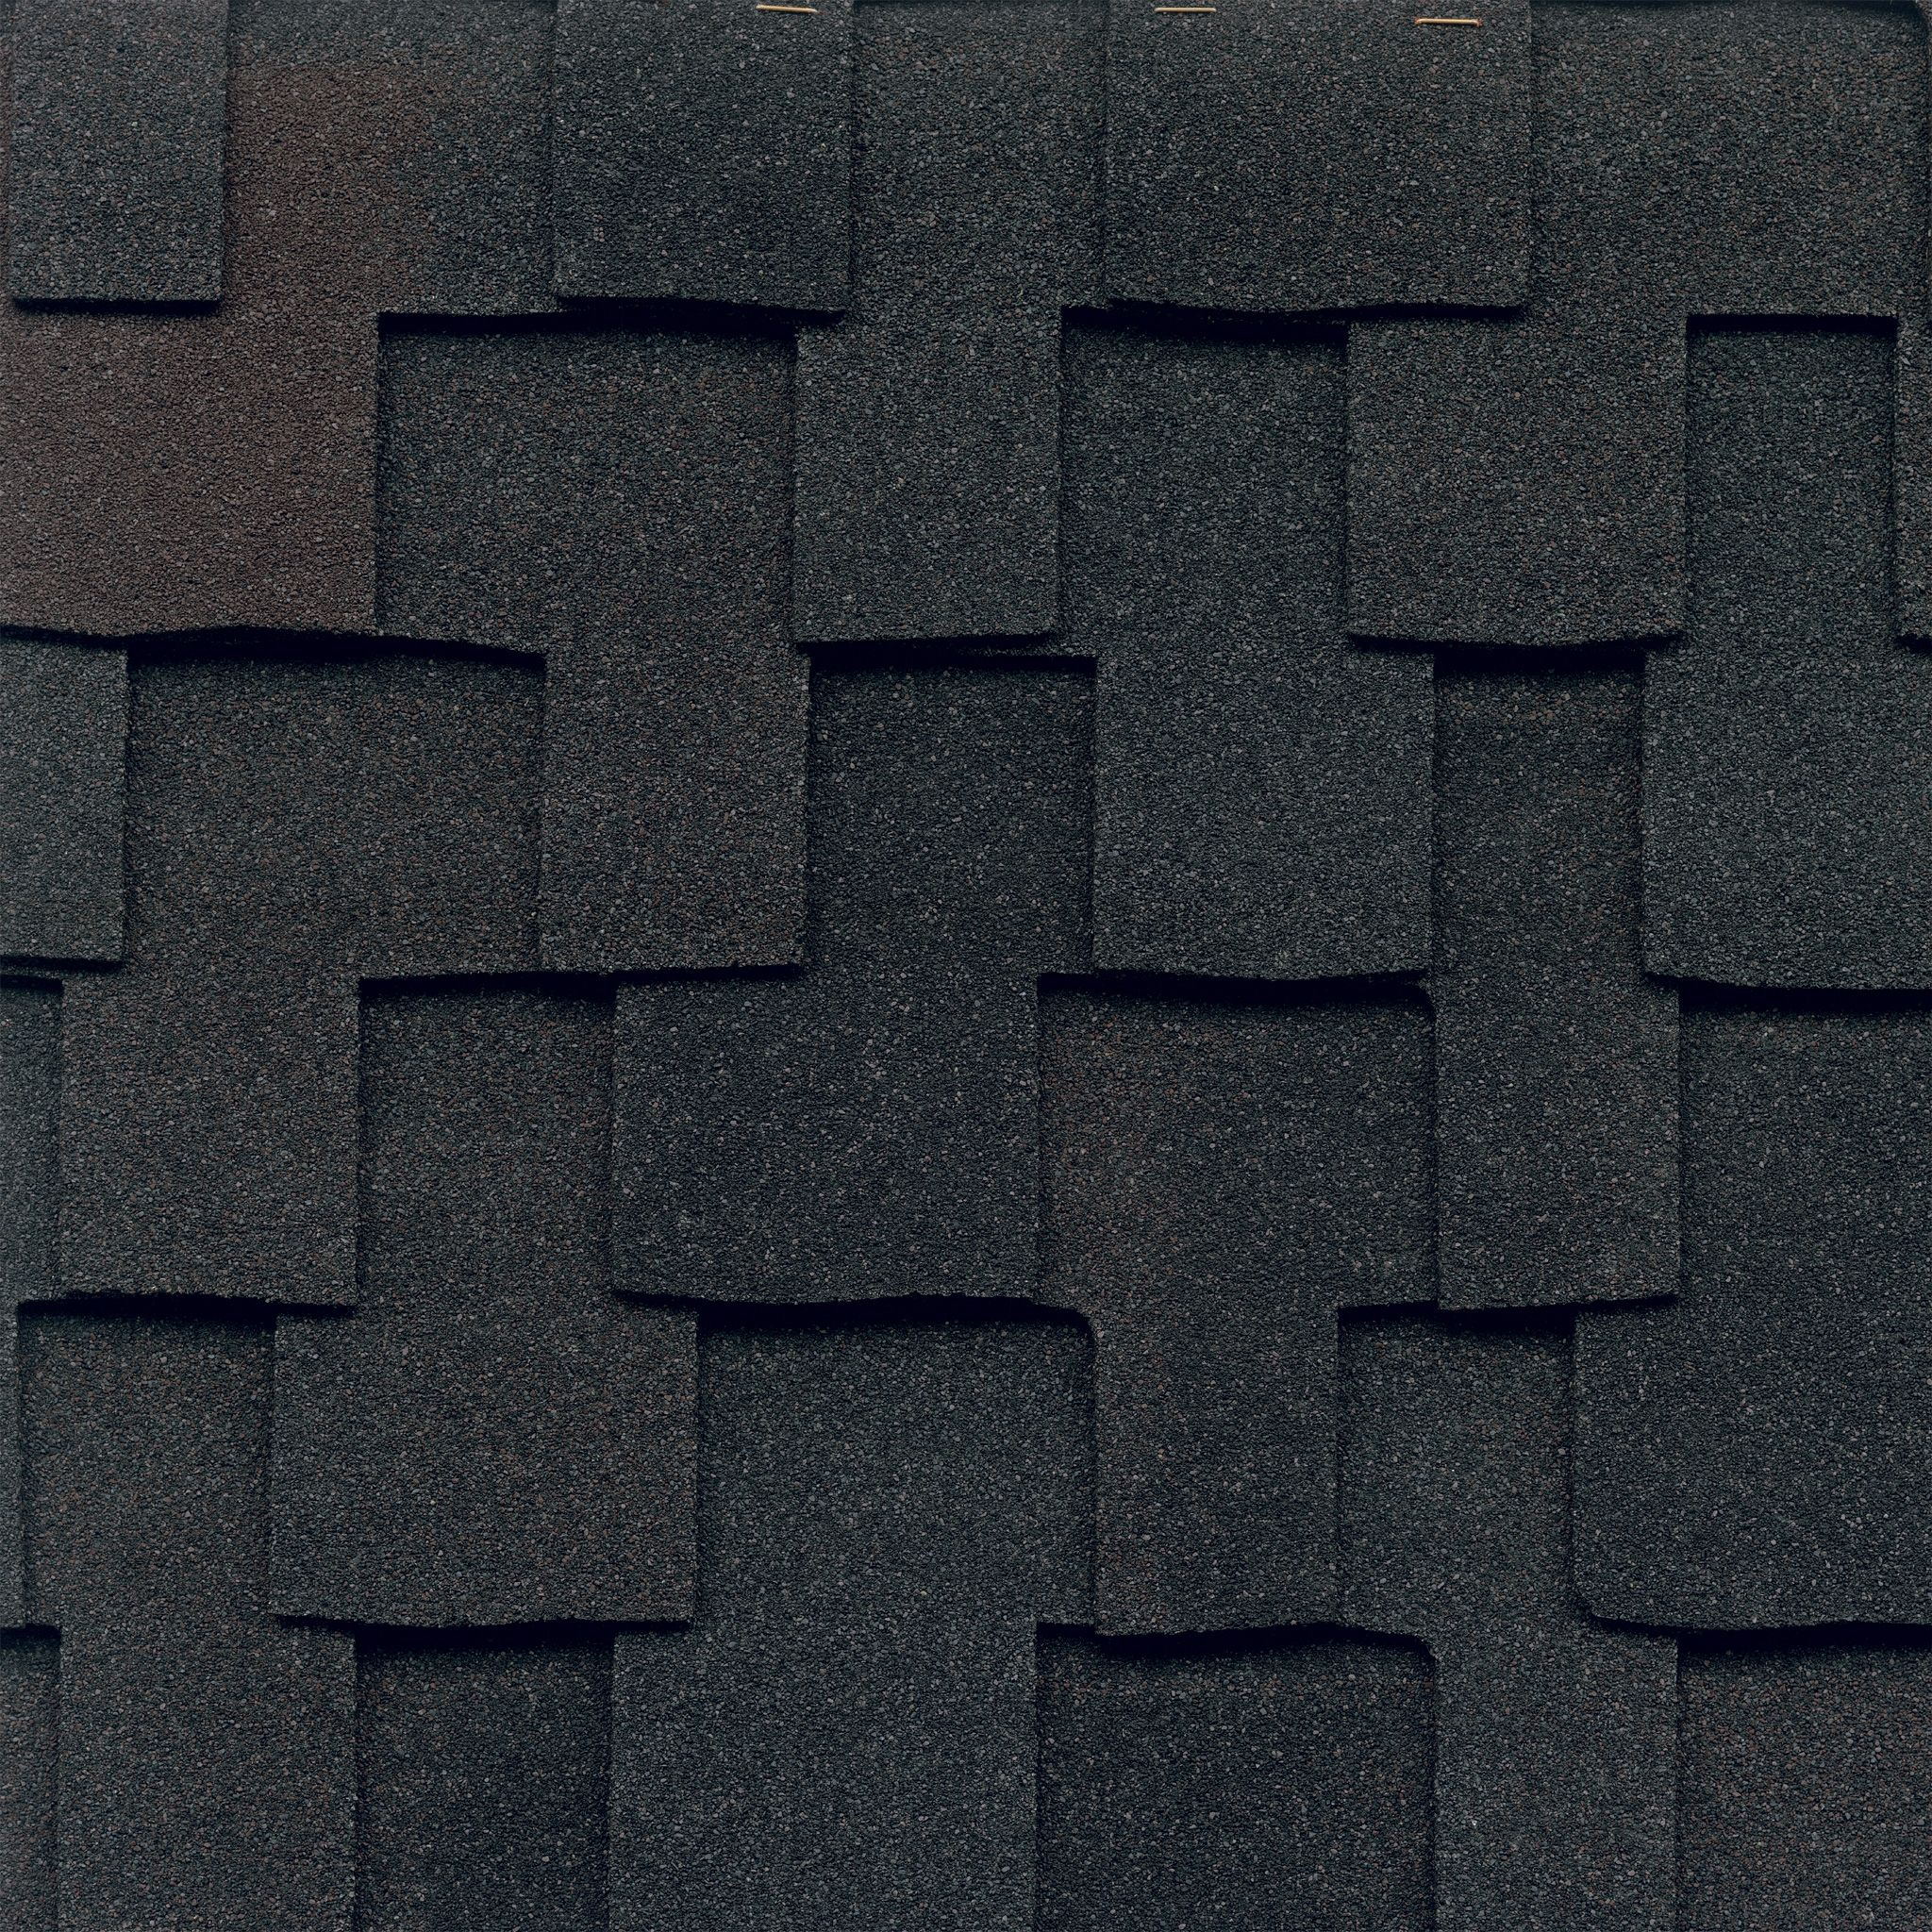 Best Grand Canyon Black Oak Architectural Shingles Roof 400 x 300